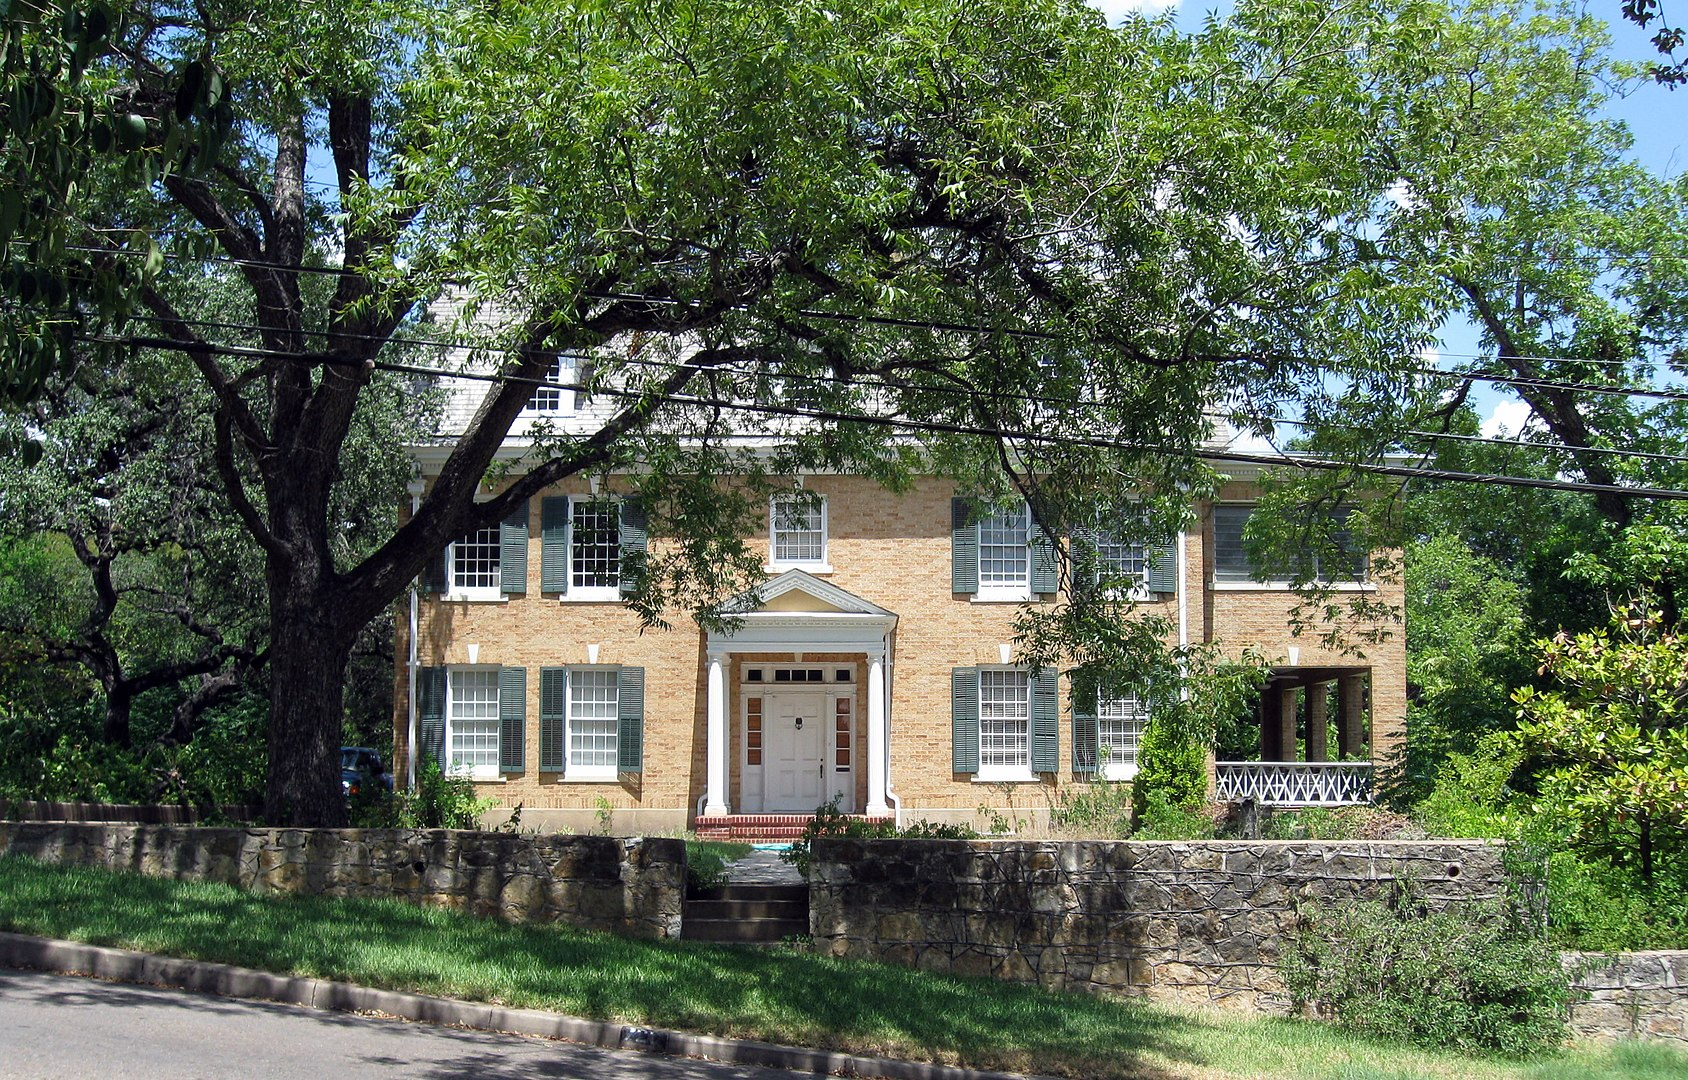 The Cox-Craddock House (720 E. 32nd St., Austin, TX), built in 1928.